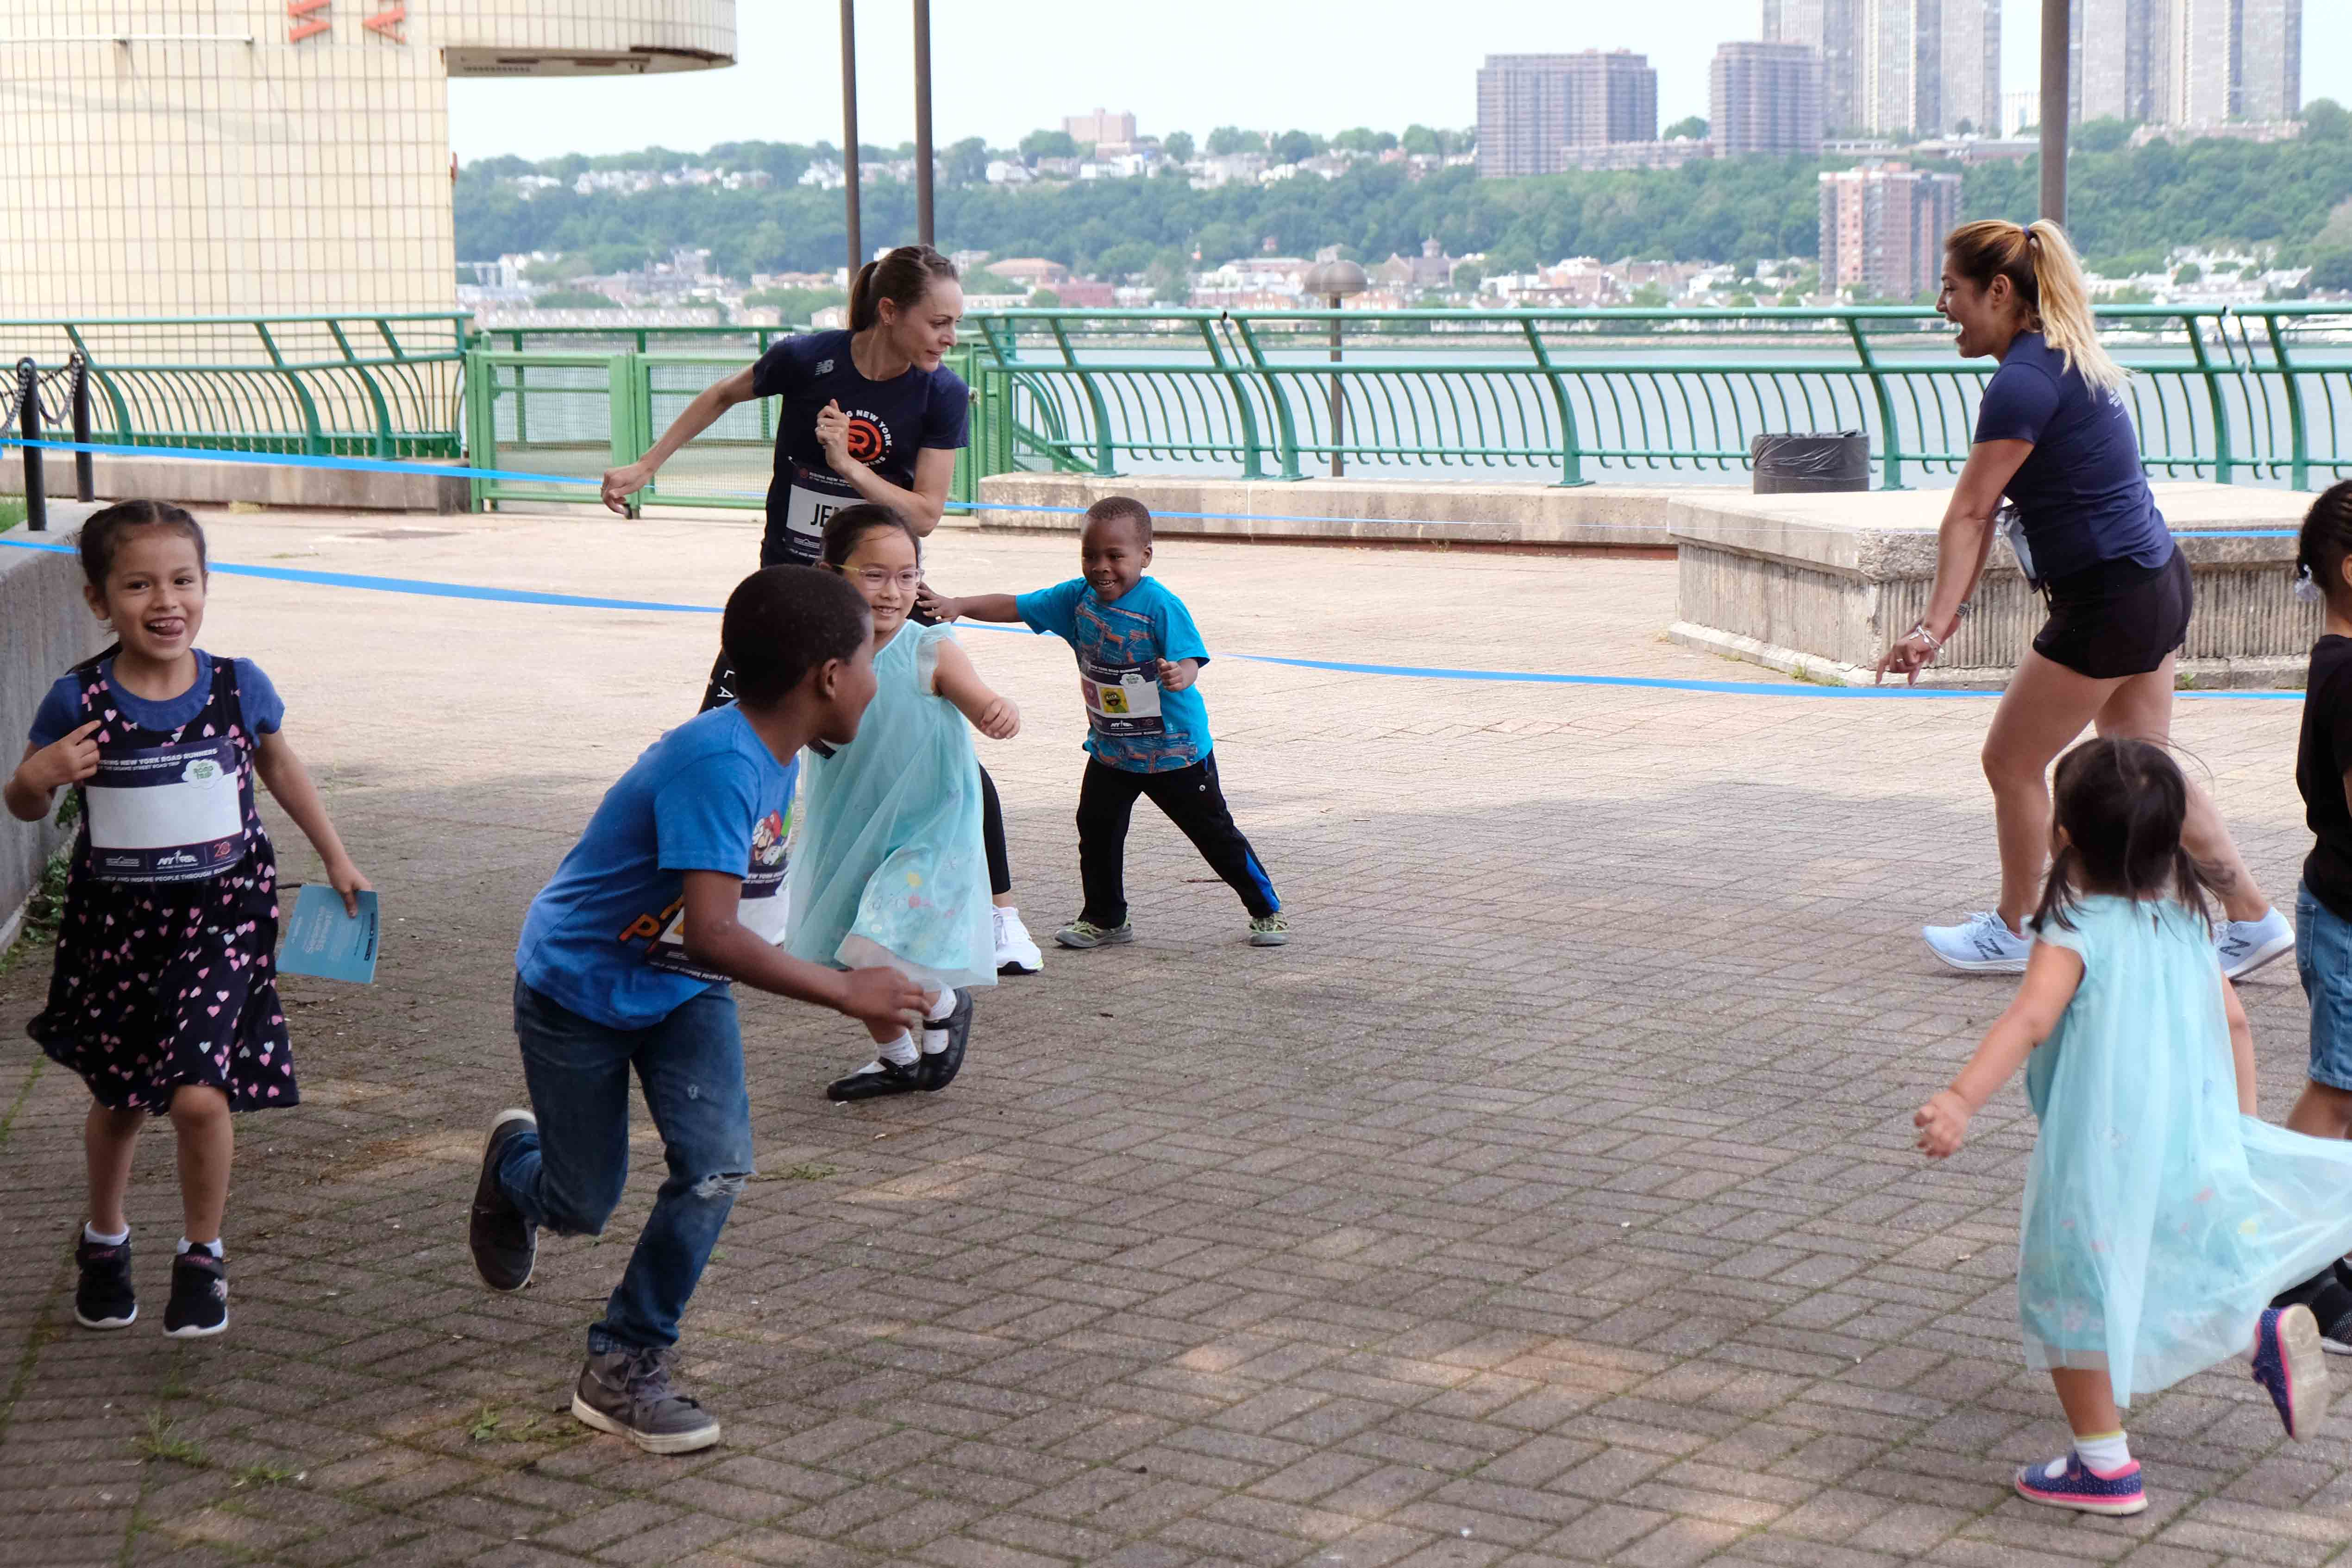 Rising New York Road Runners students playing a game of tag with Jenny Simpson and NYRR staff